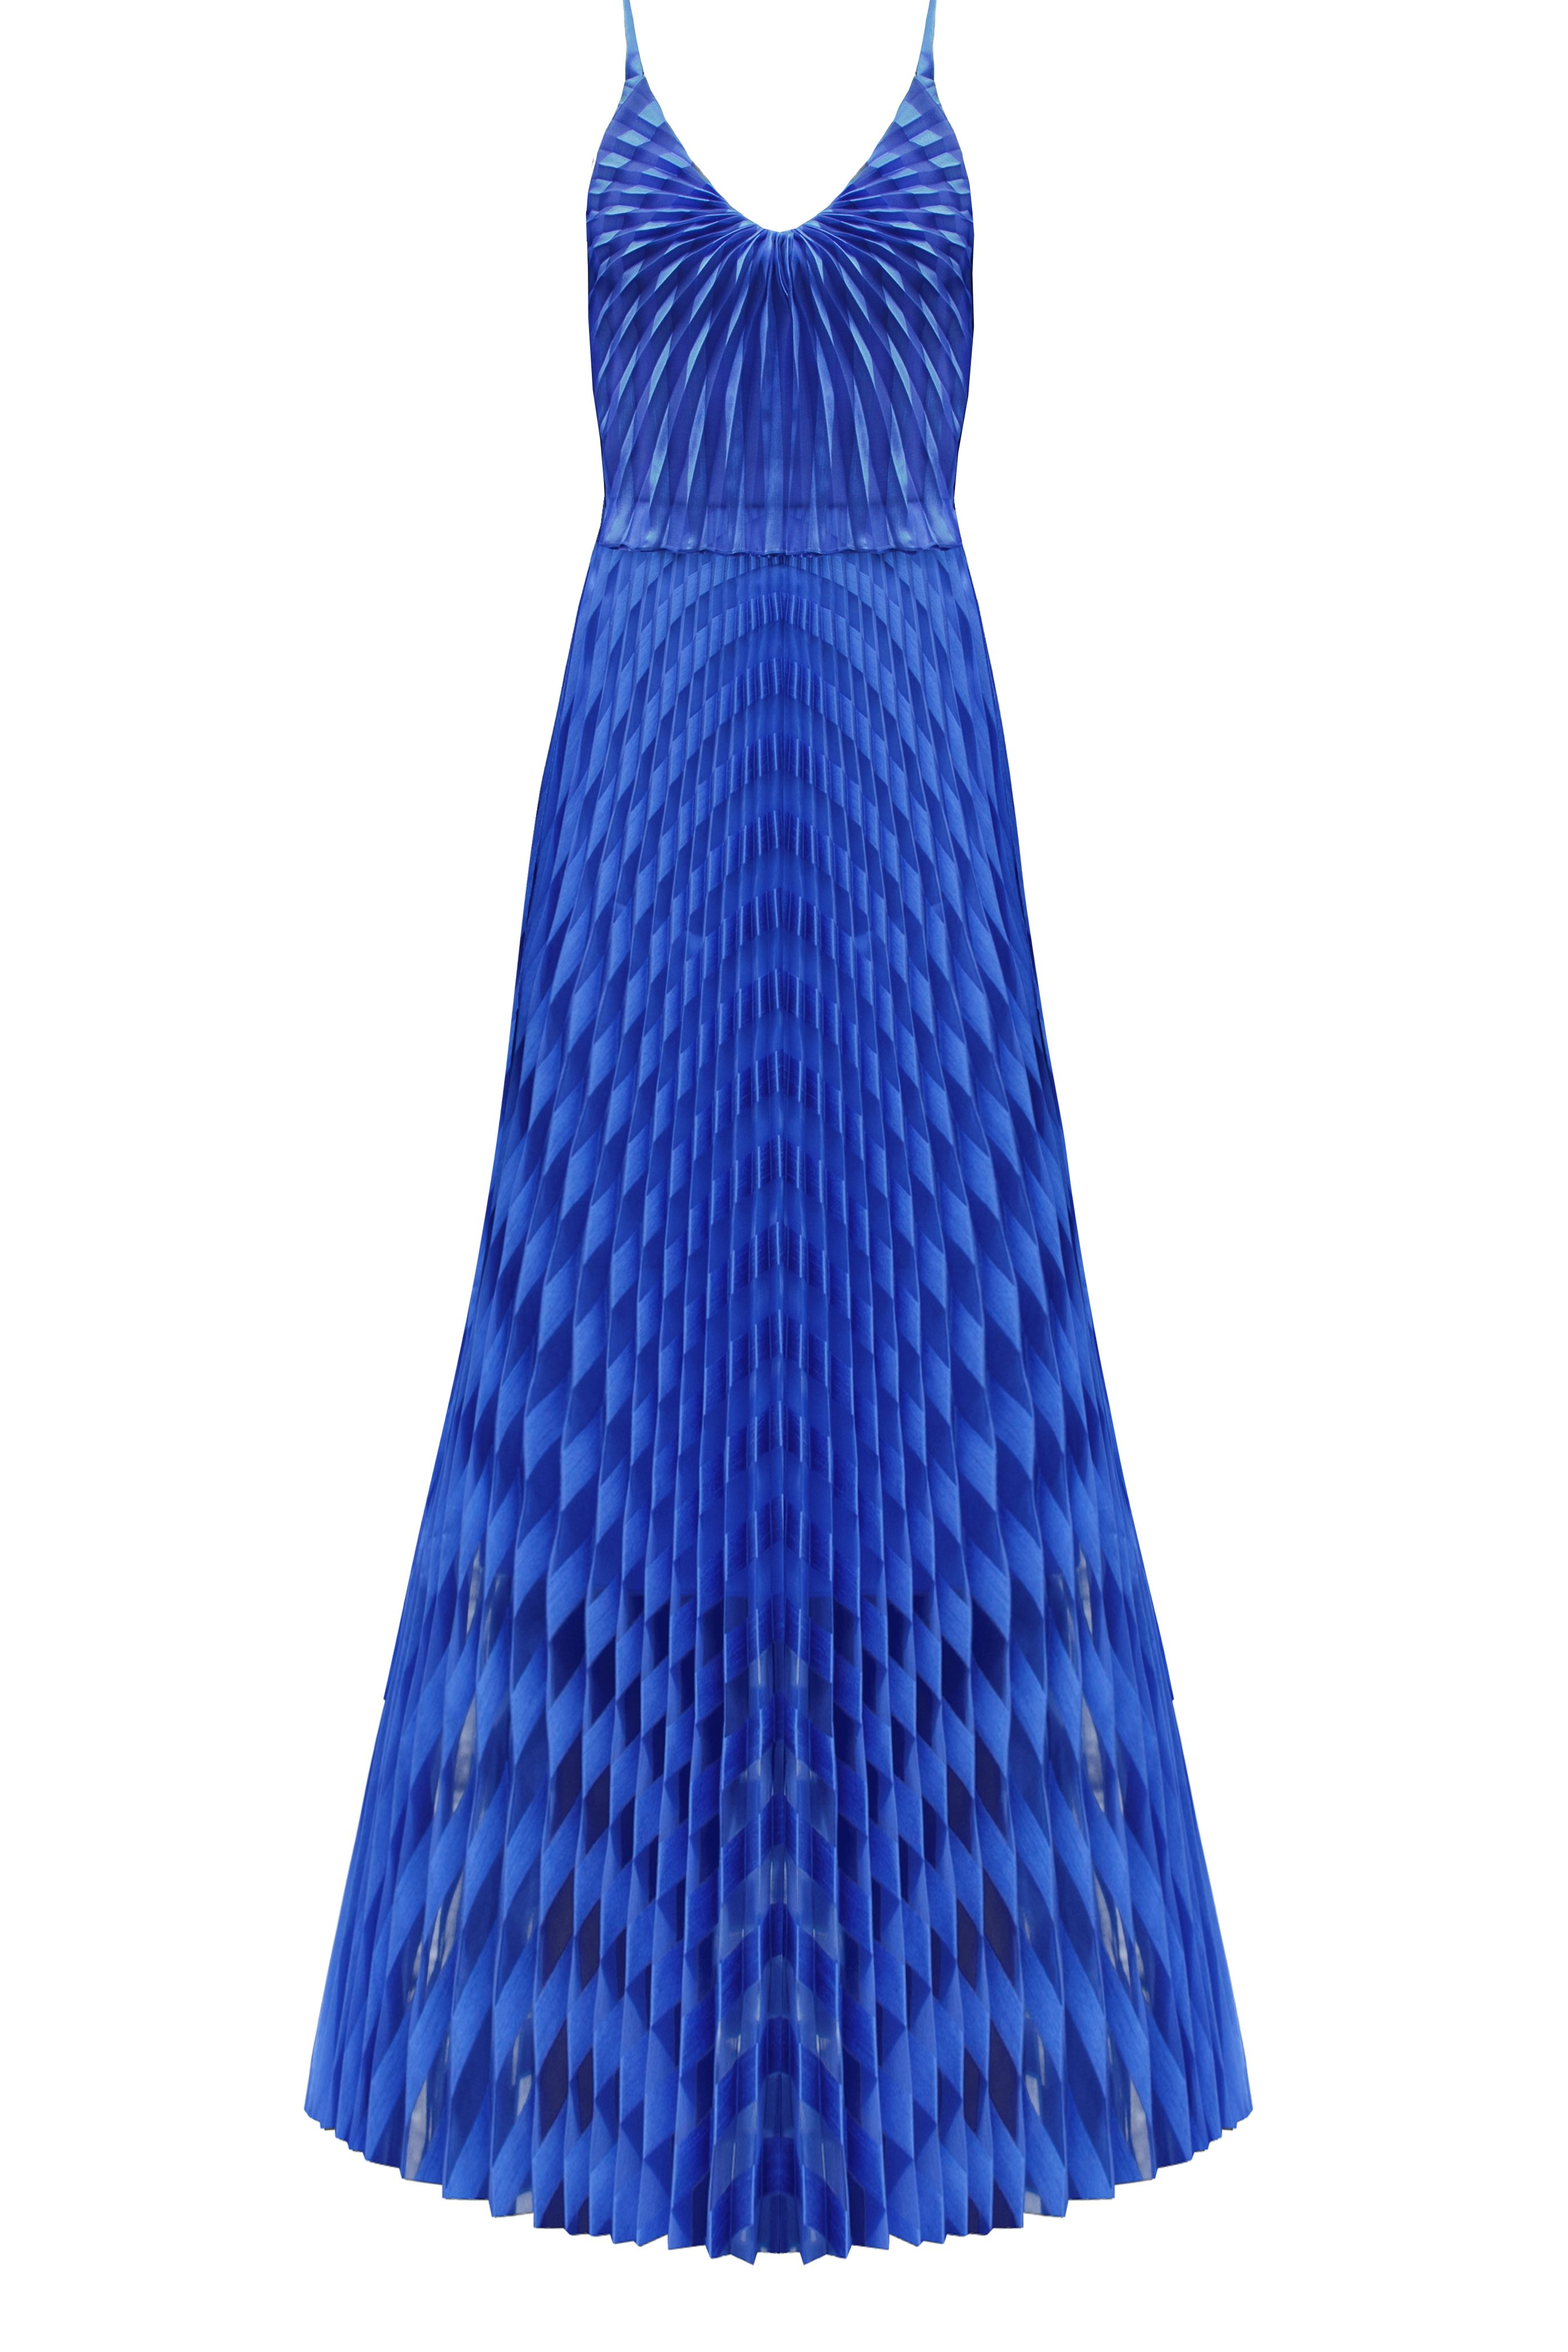 NAVY PLEAT MAXI DRESS